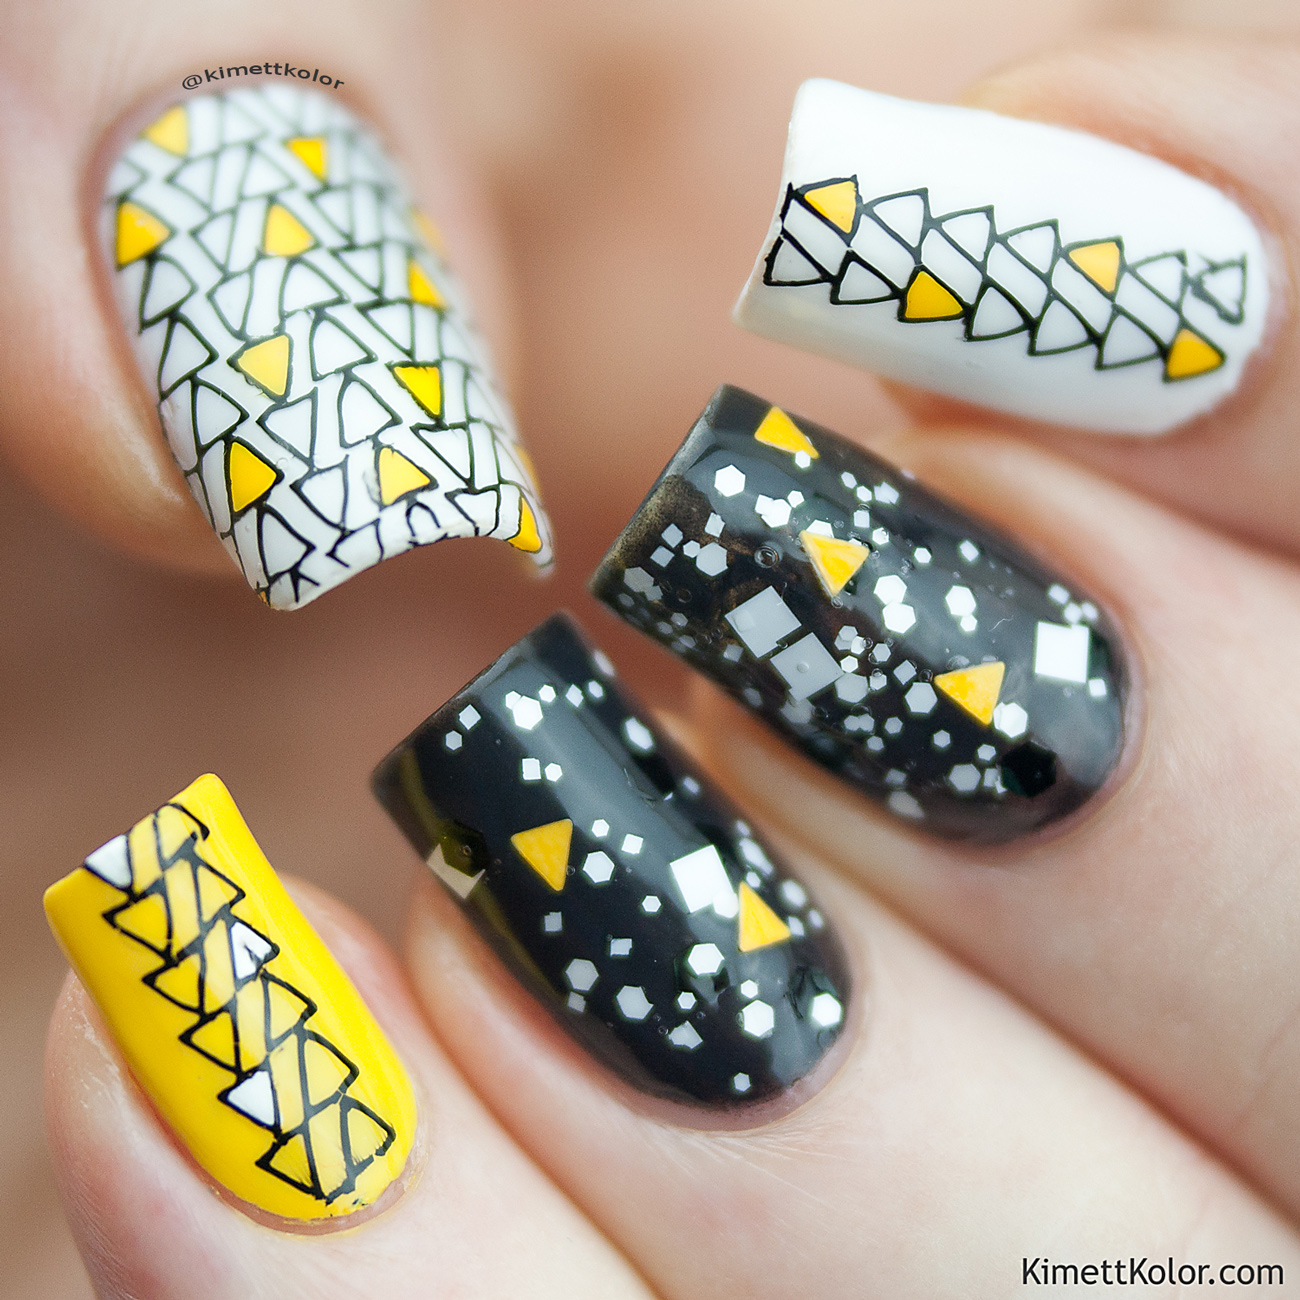 Kimett Kolor Black White Yellow Triangle Stamping Nail Art